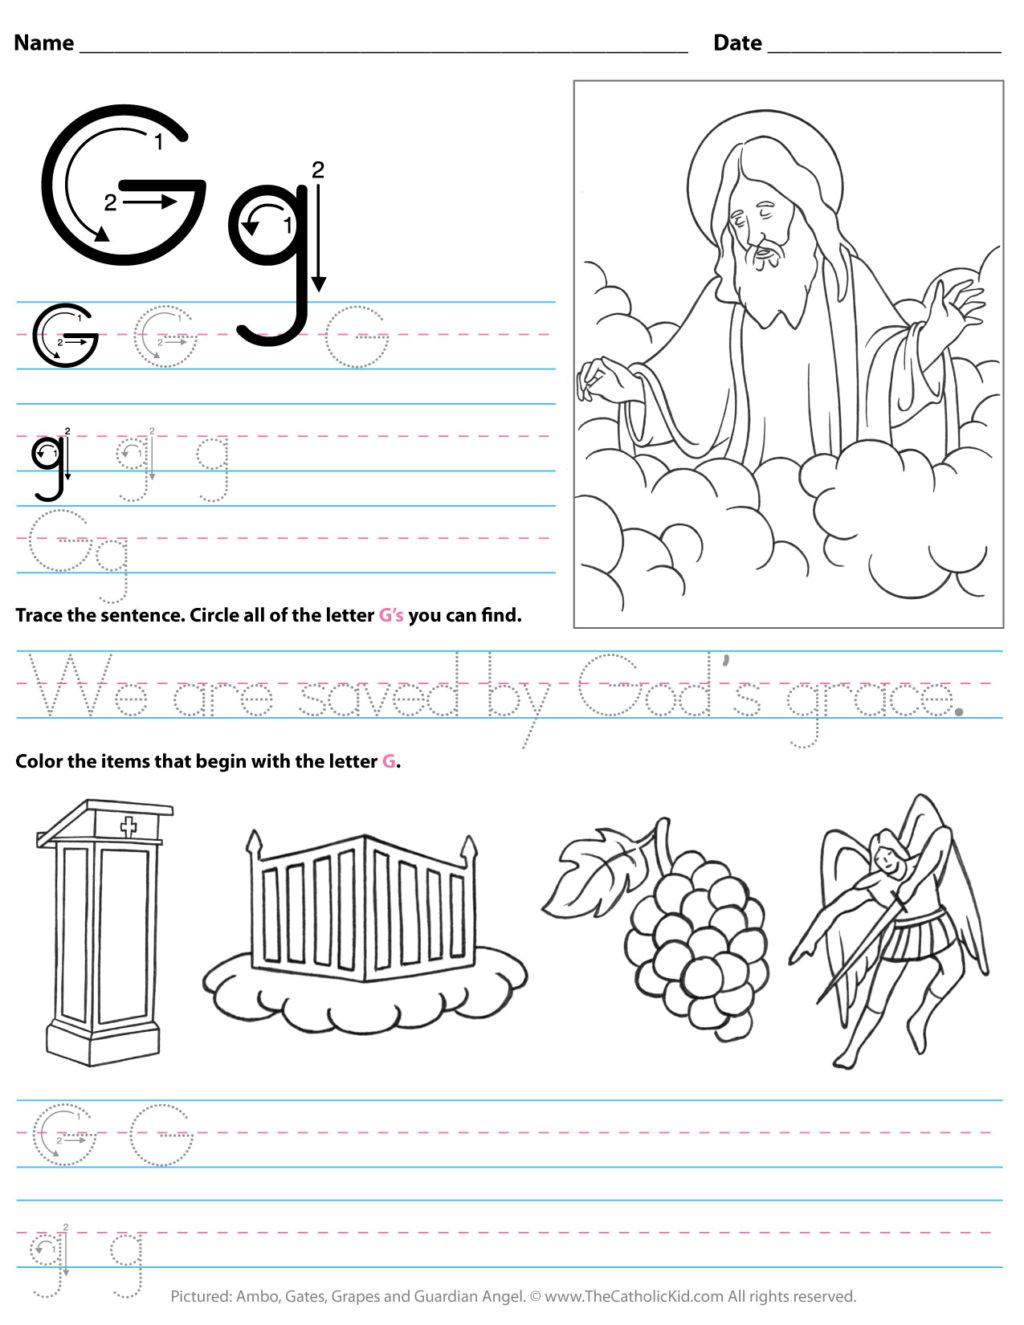 Letter G Tracing Worksheets Preschool Worksheet Staggering I Worksheets for Preschool Worksheet